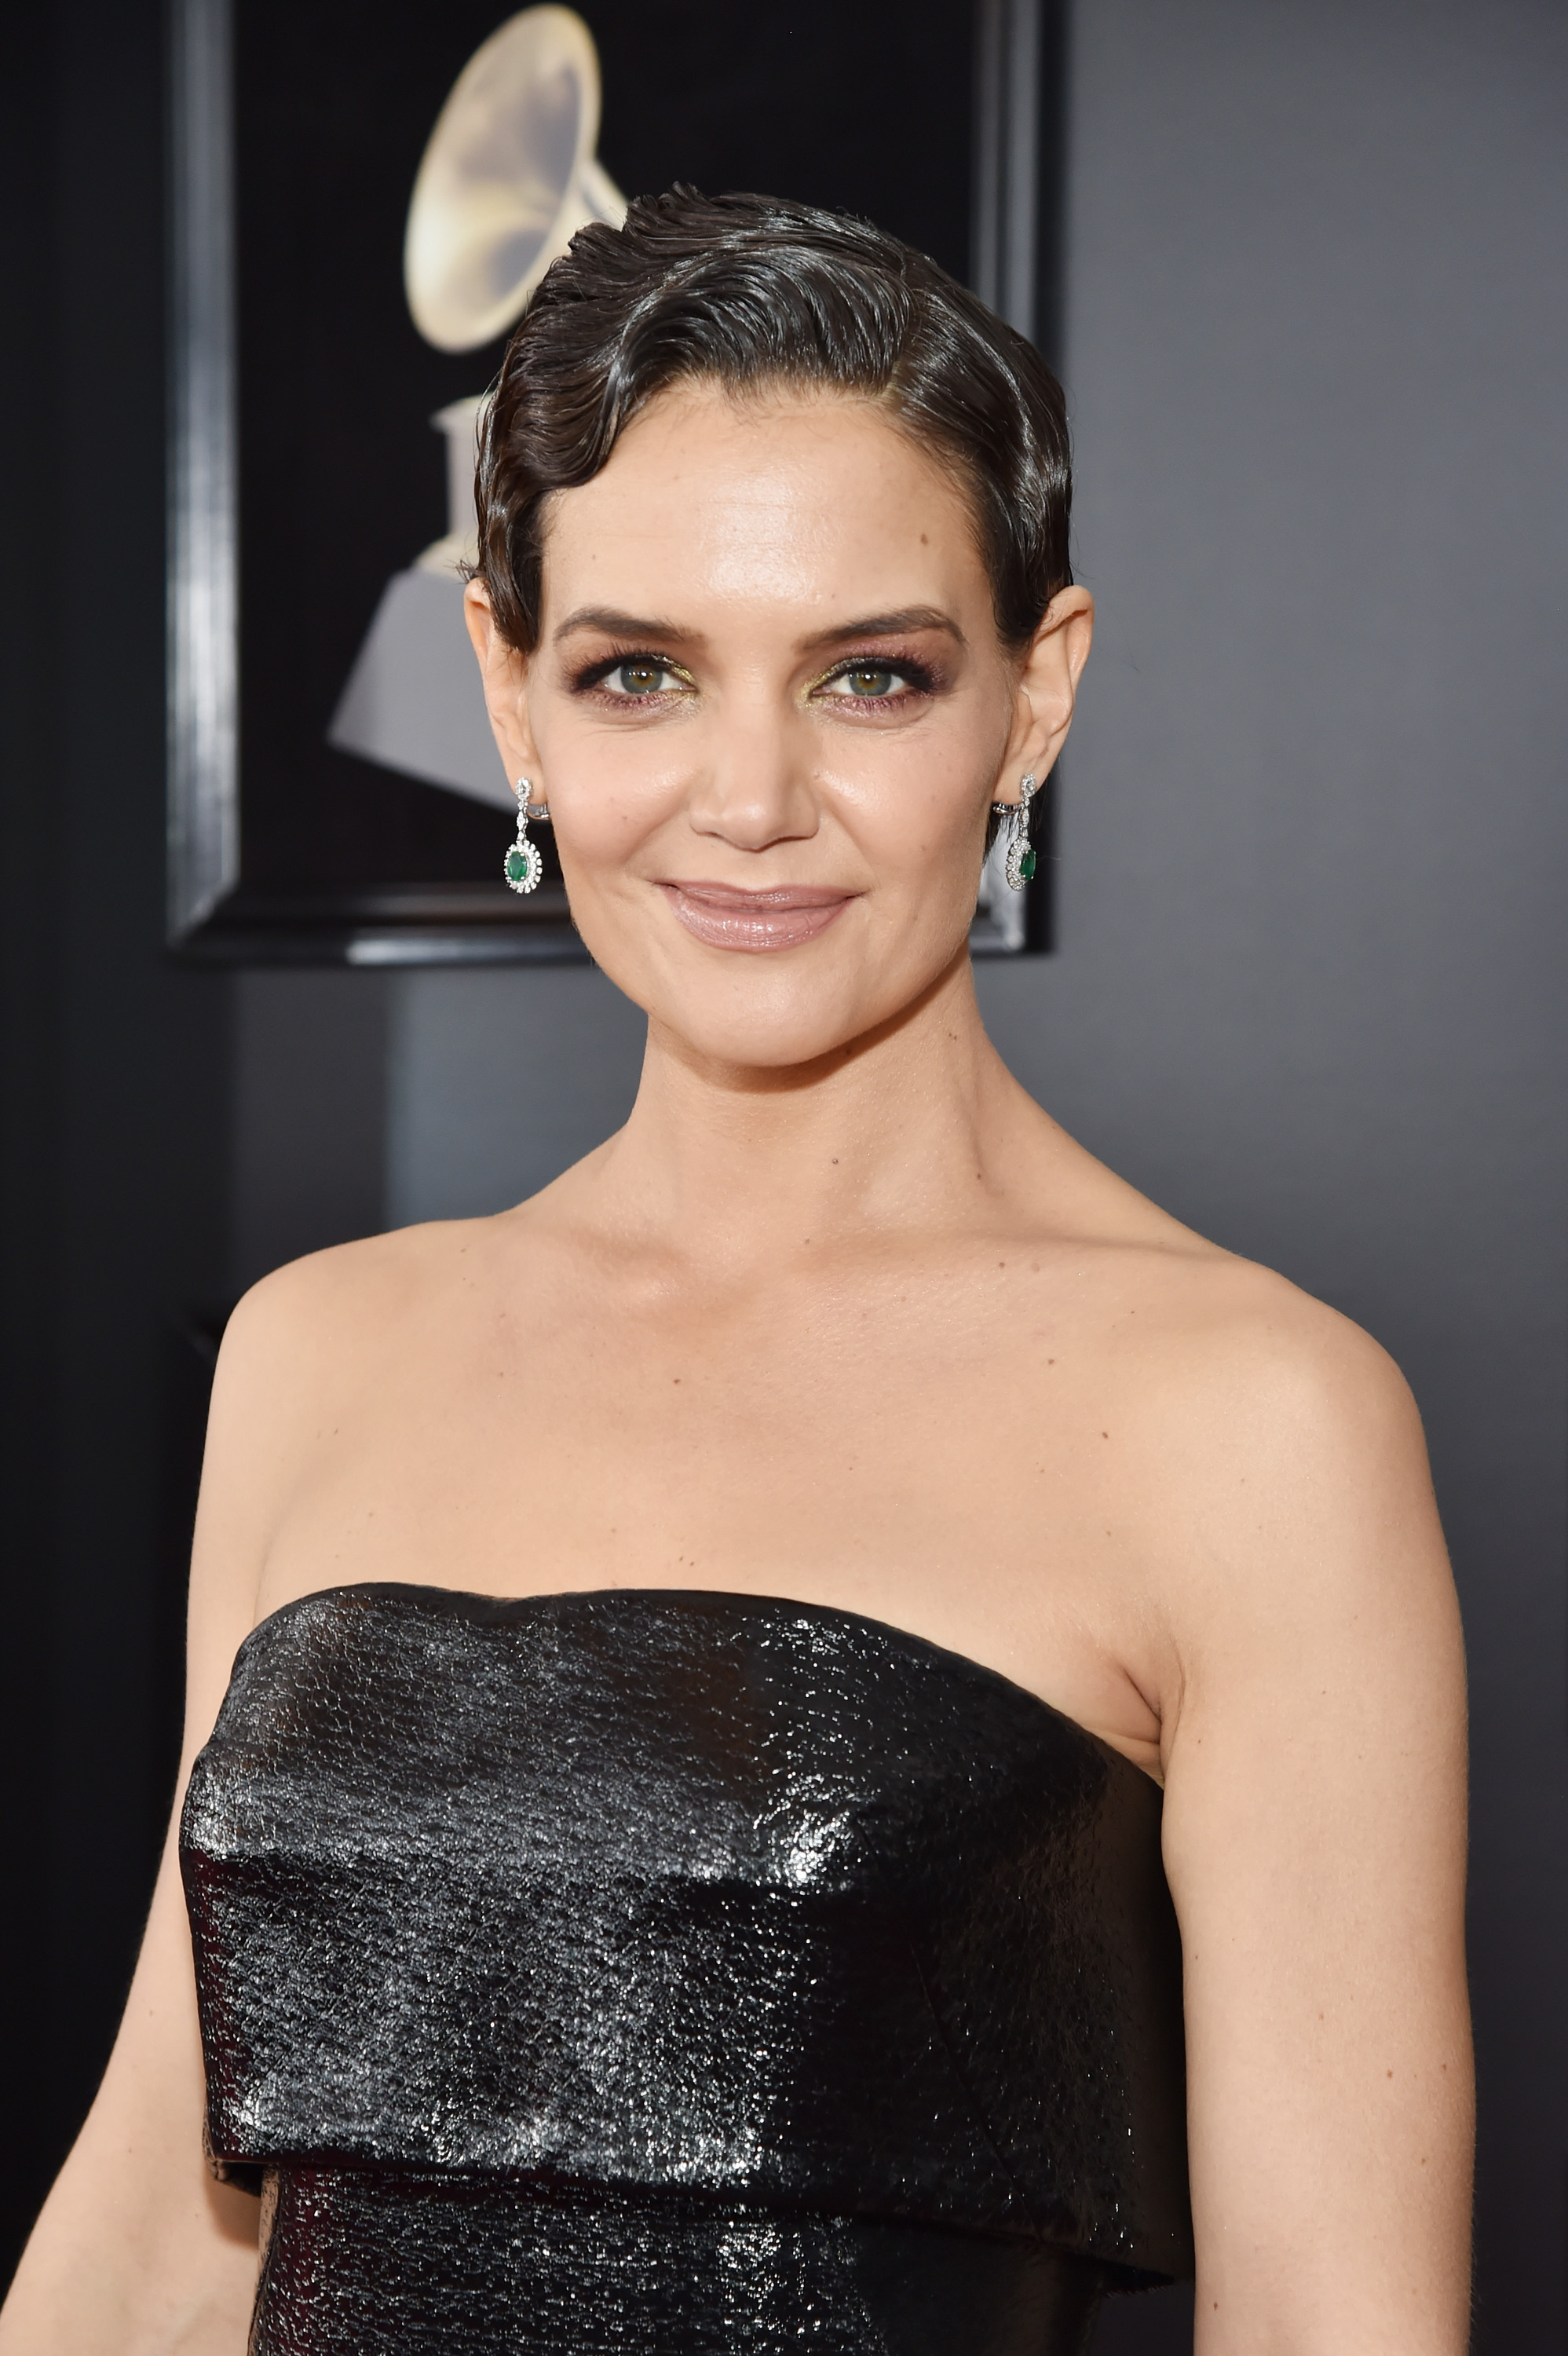 Katie Holmes Pixie Hairstyle Is The Short Hair Trend For 2018